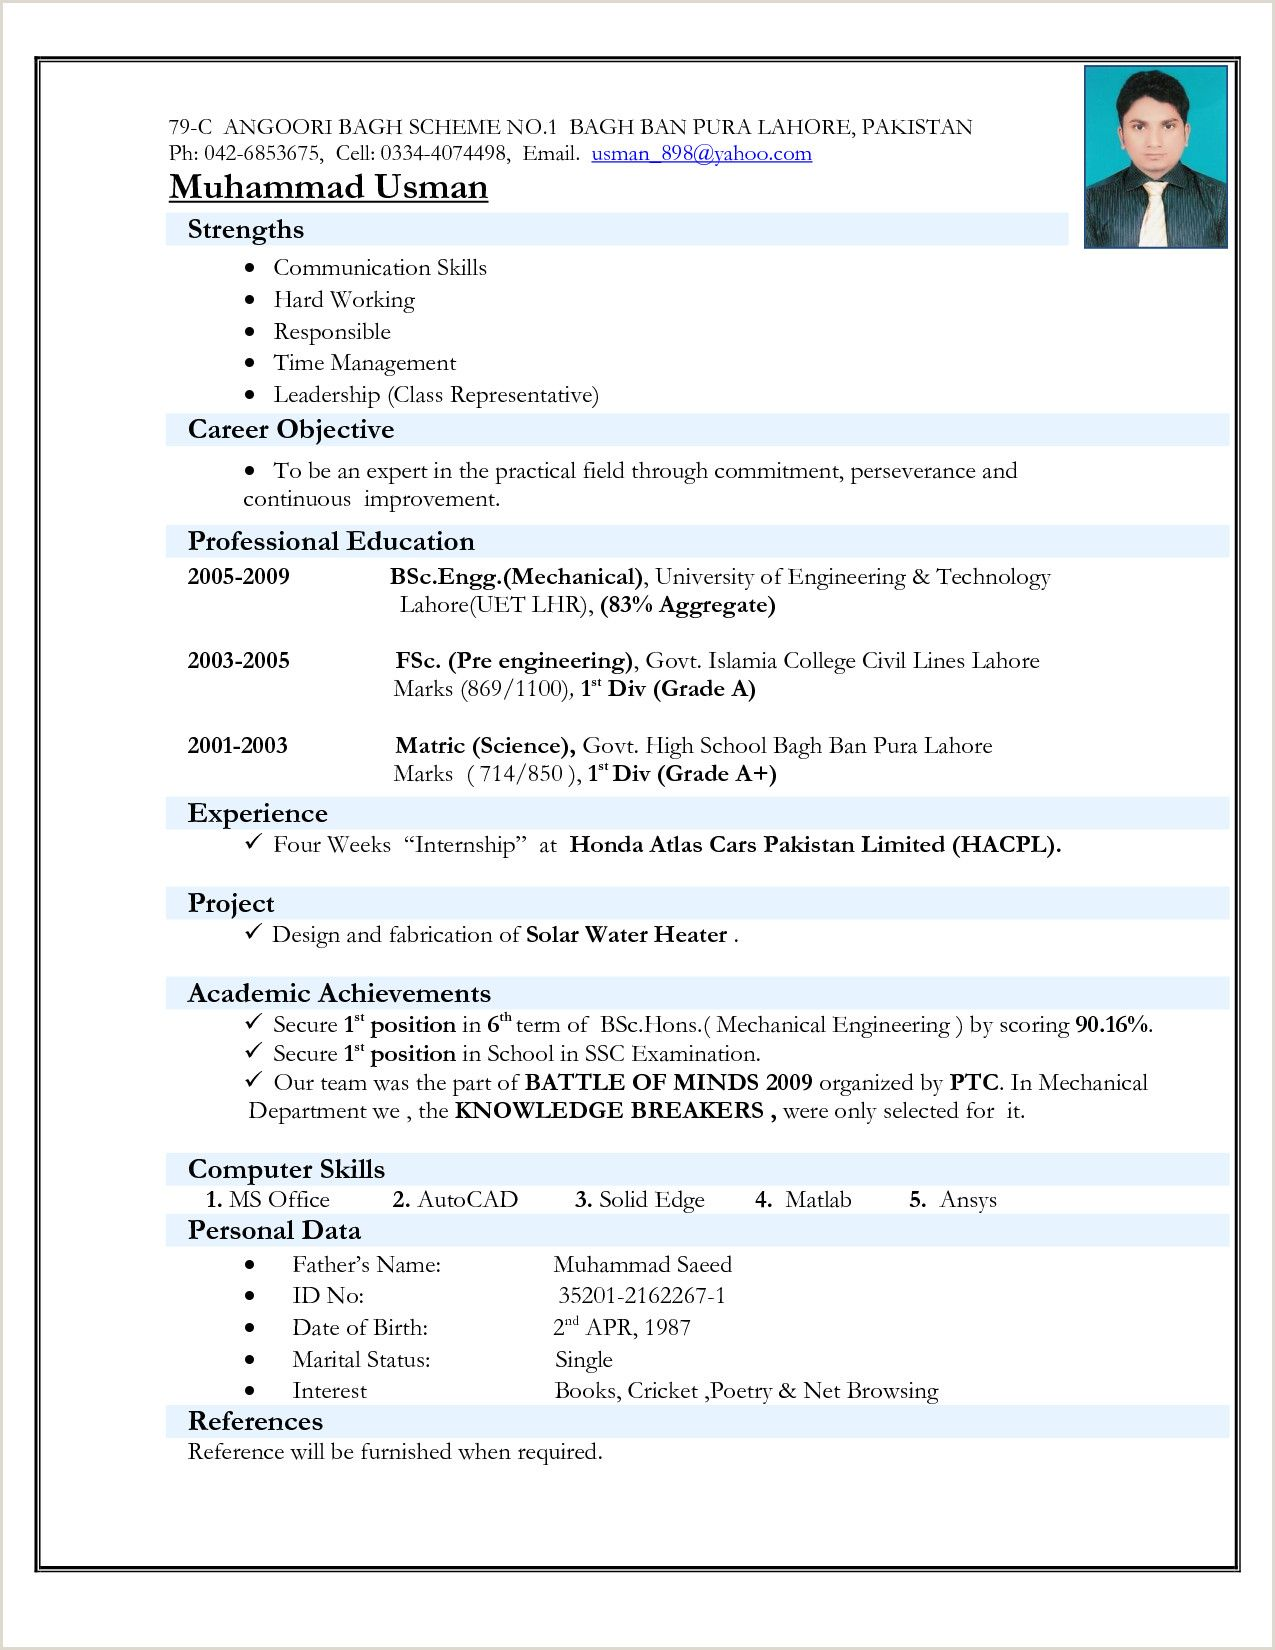 latest resume format for freshers layout of emory template upload pointers freelance Resume Layout Of Resume For Freshers